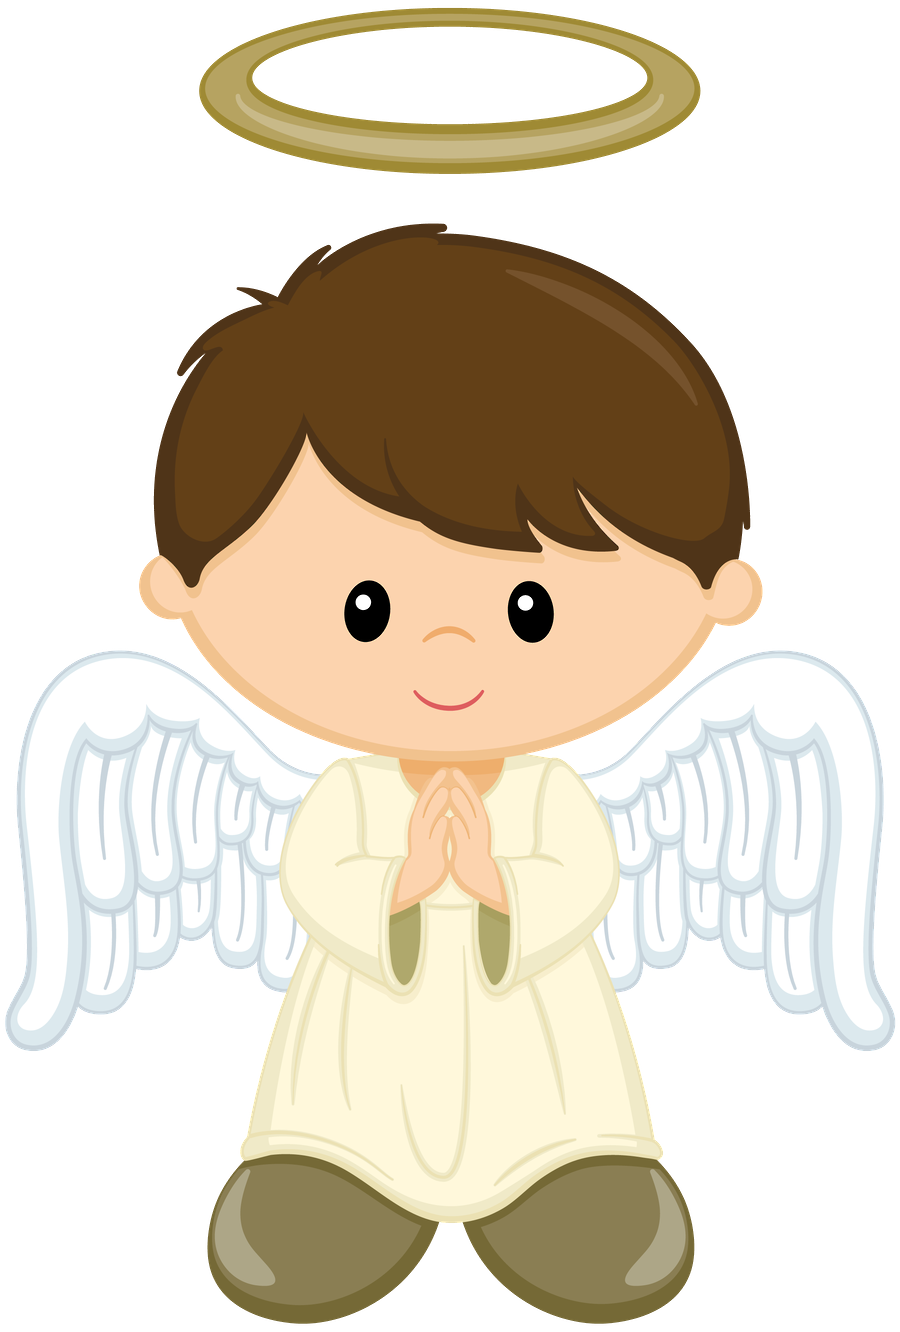 image library download Baptism clipart pretty baby. Pin by jeny chique.